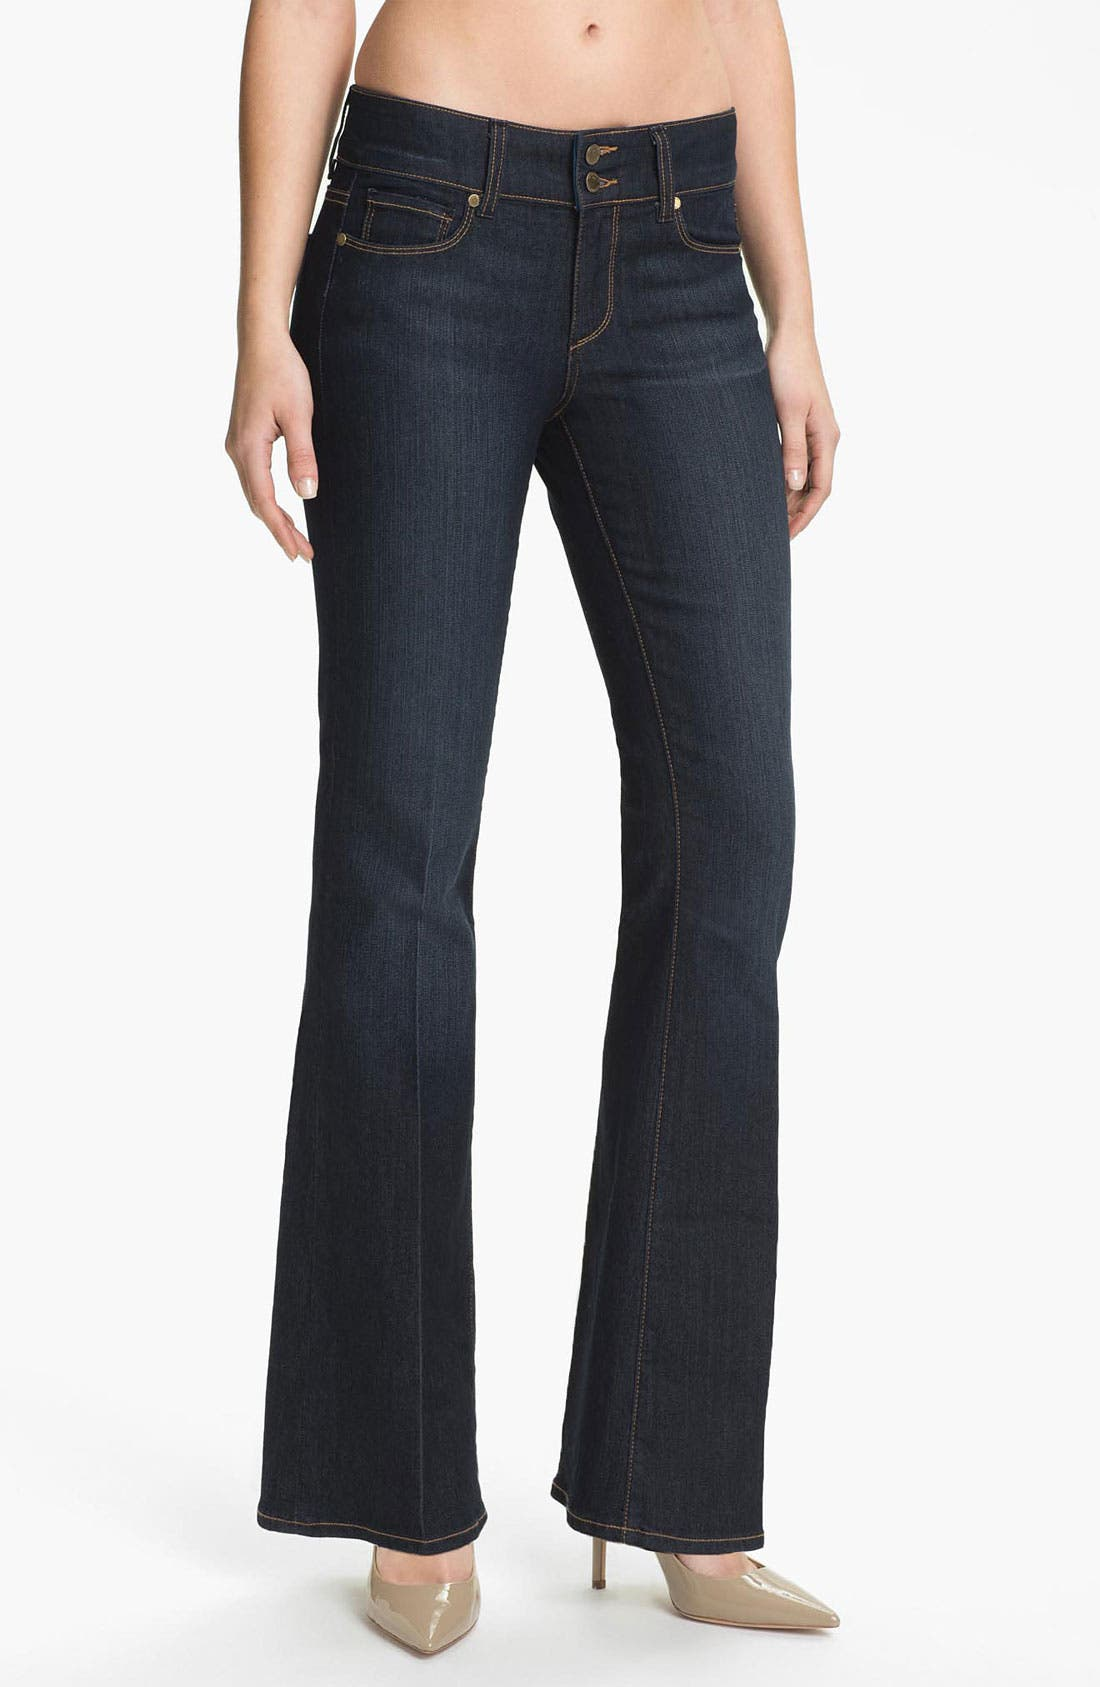 Alternate Image 1 Selected - Paige Denim 'Hidden Hills' Bootcut Stretch Jeans (Carson) (Petite)